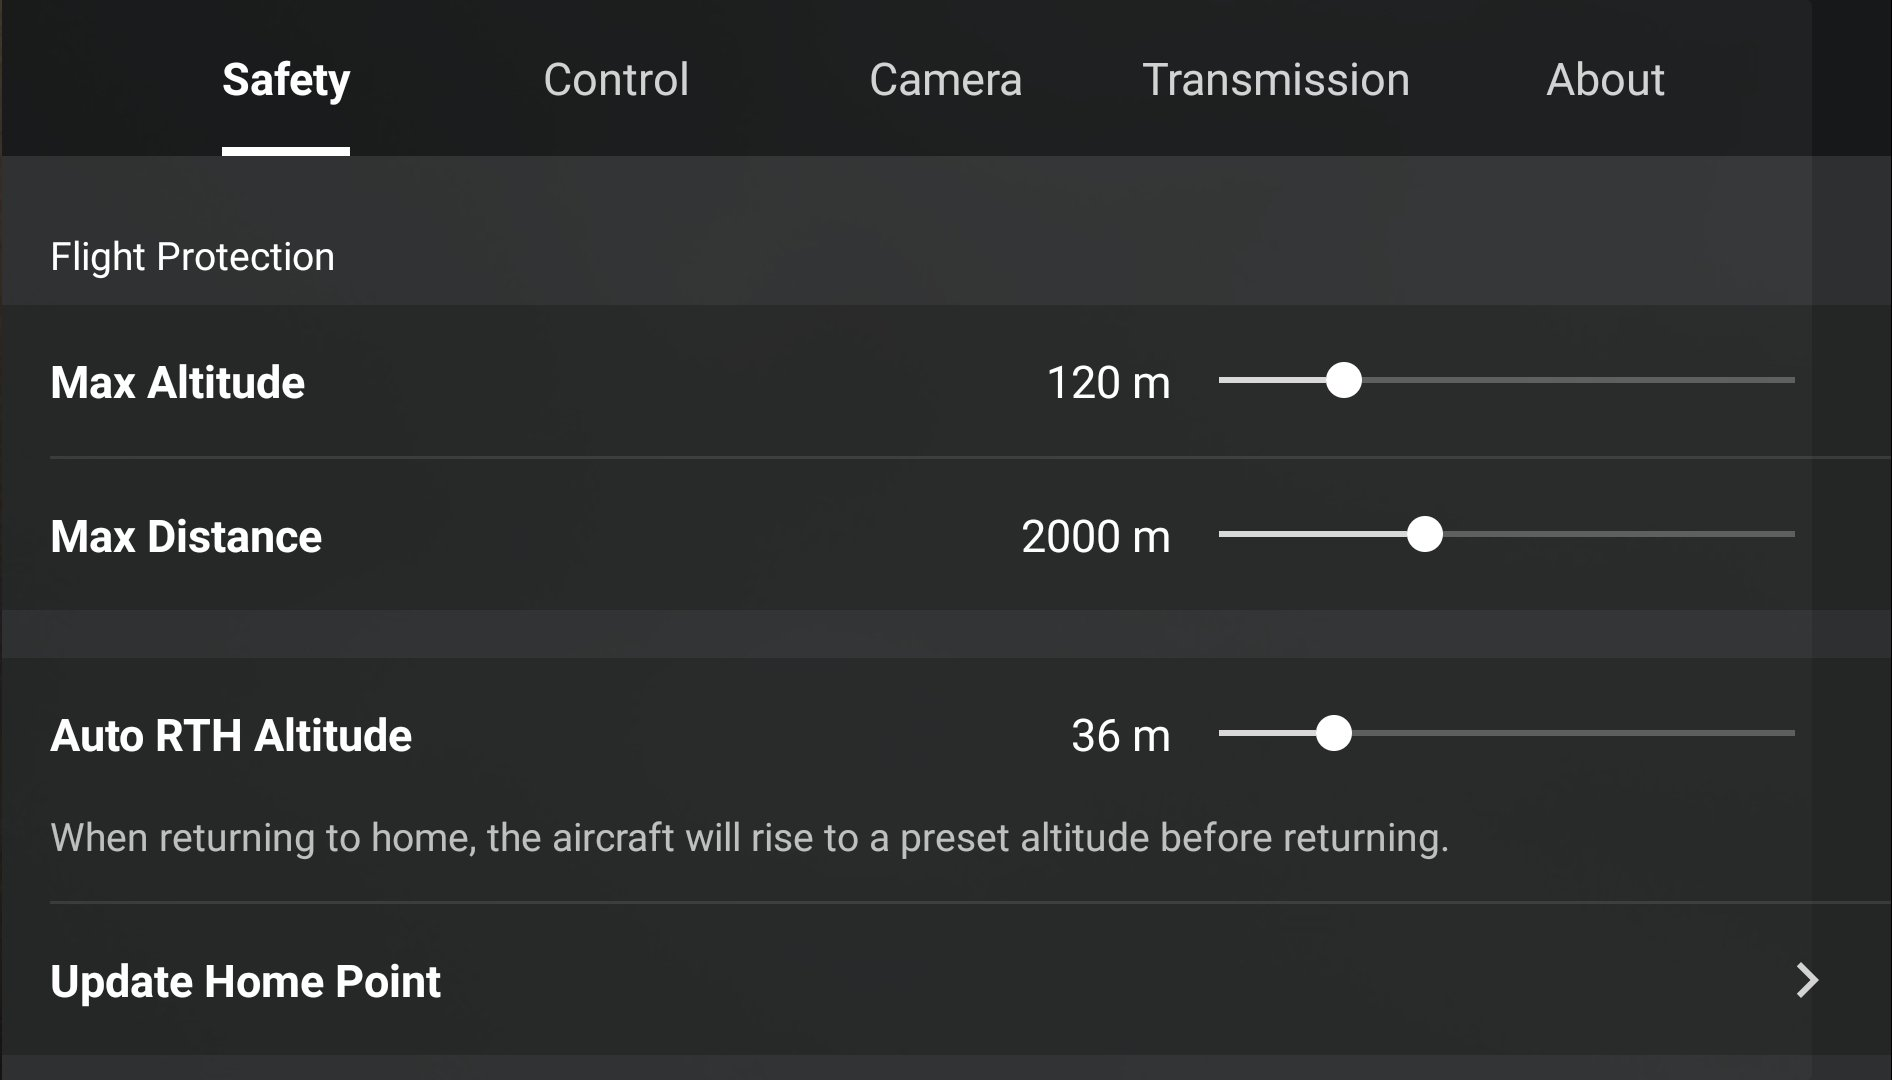 DJI Fly app Safety